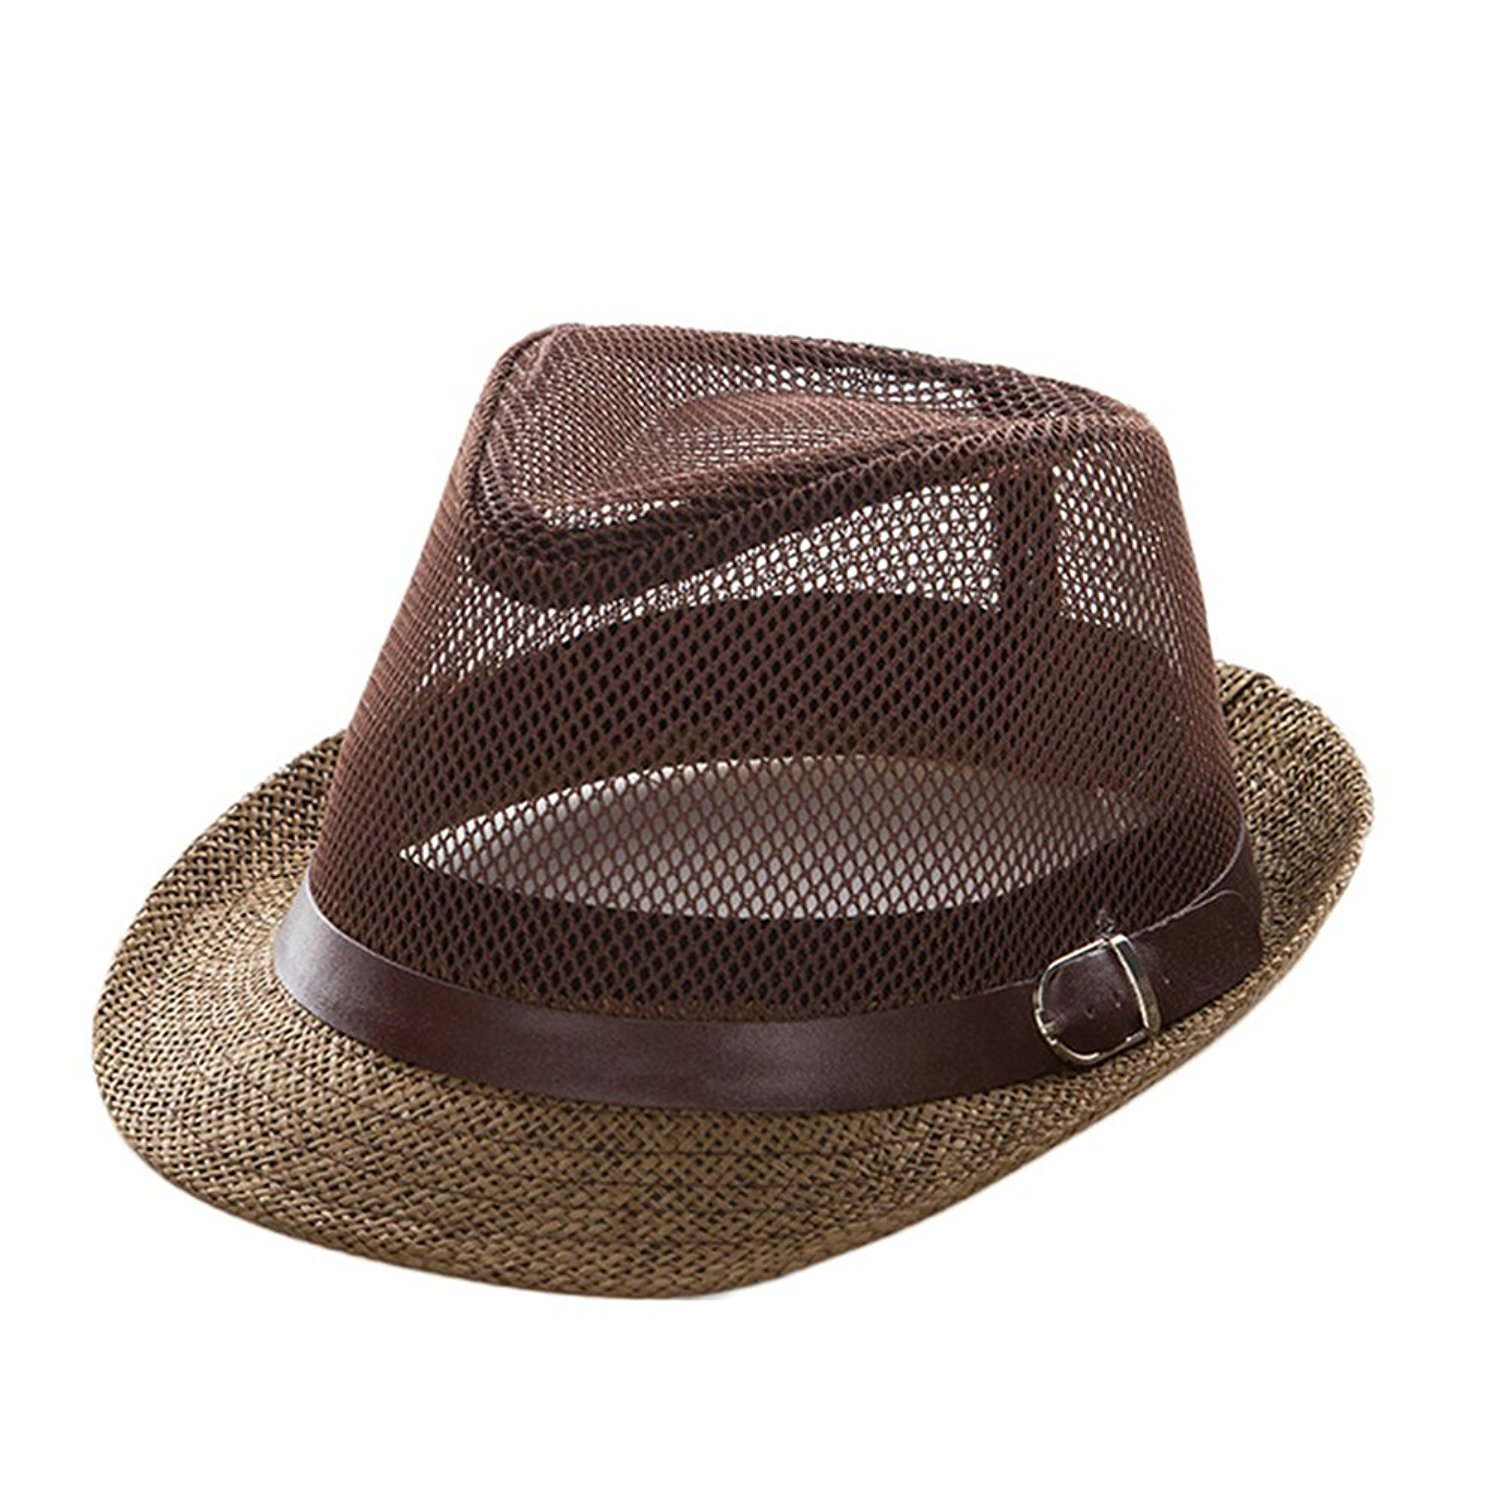 f9f7a1582f3 Get Quotations · 4URNEED Womens Mens Summer Hats Trilby Fedoras Hats Beach  Sun Hat Straw Panama Hat